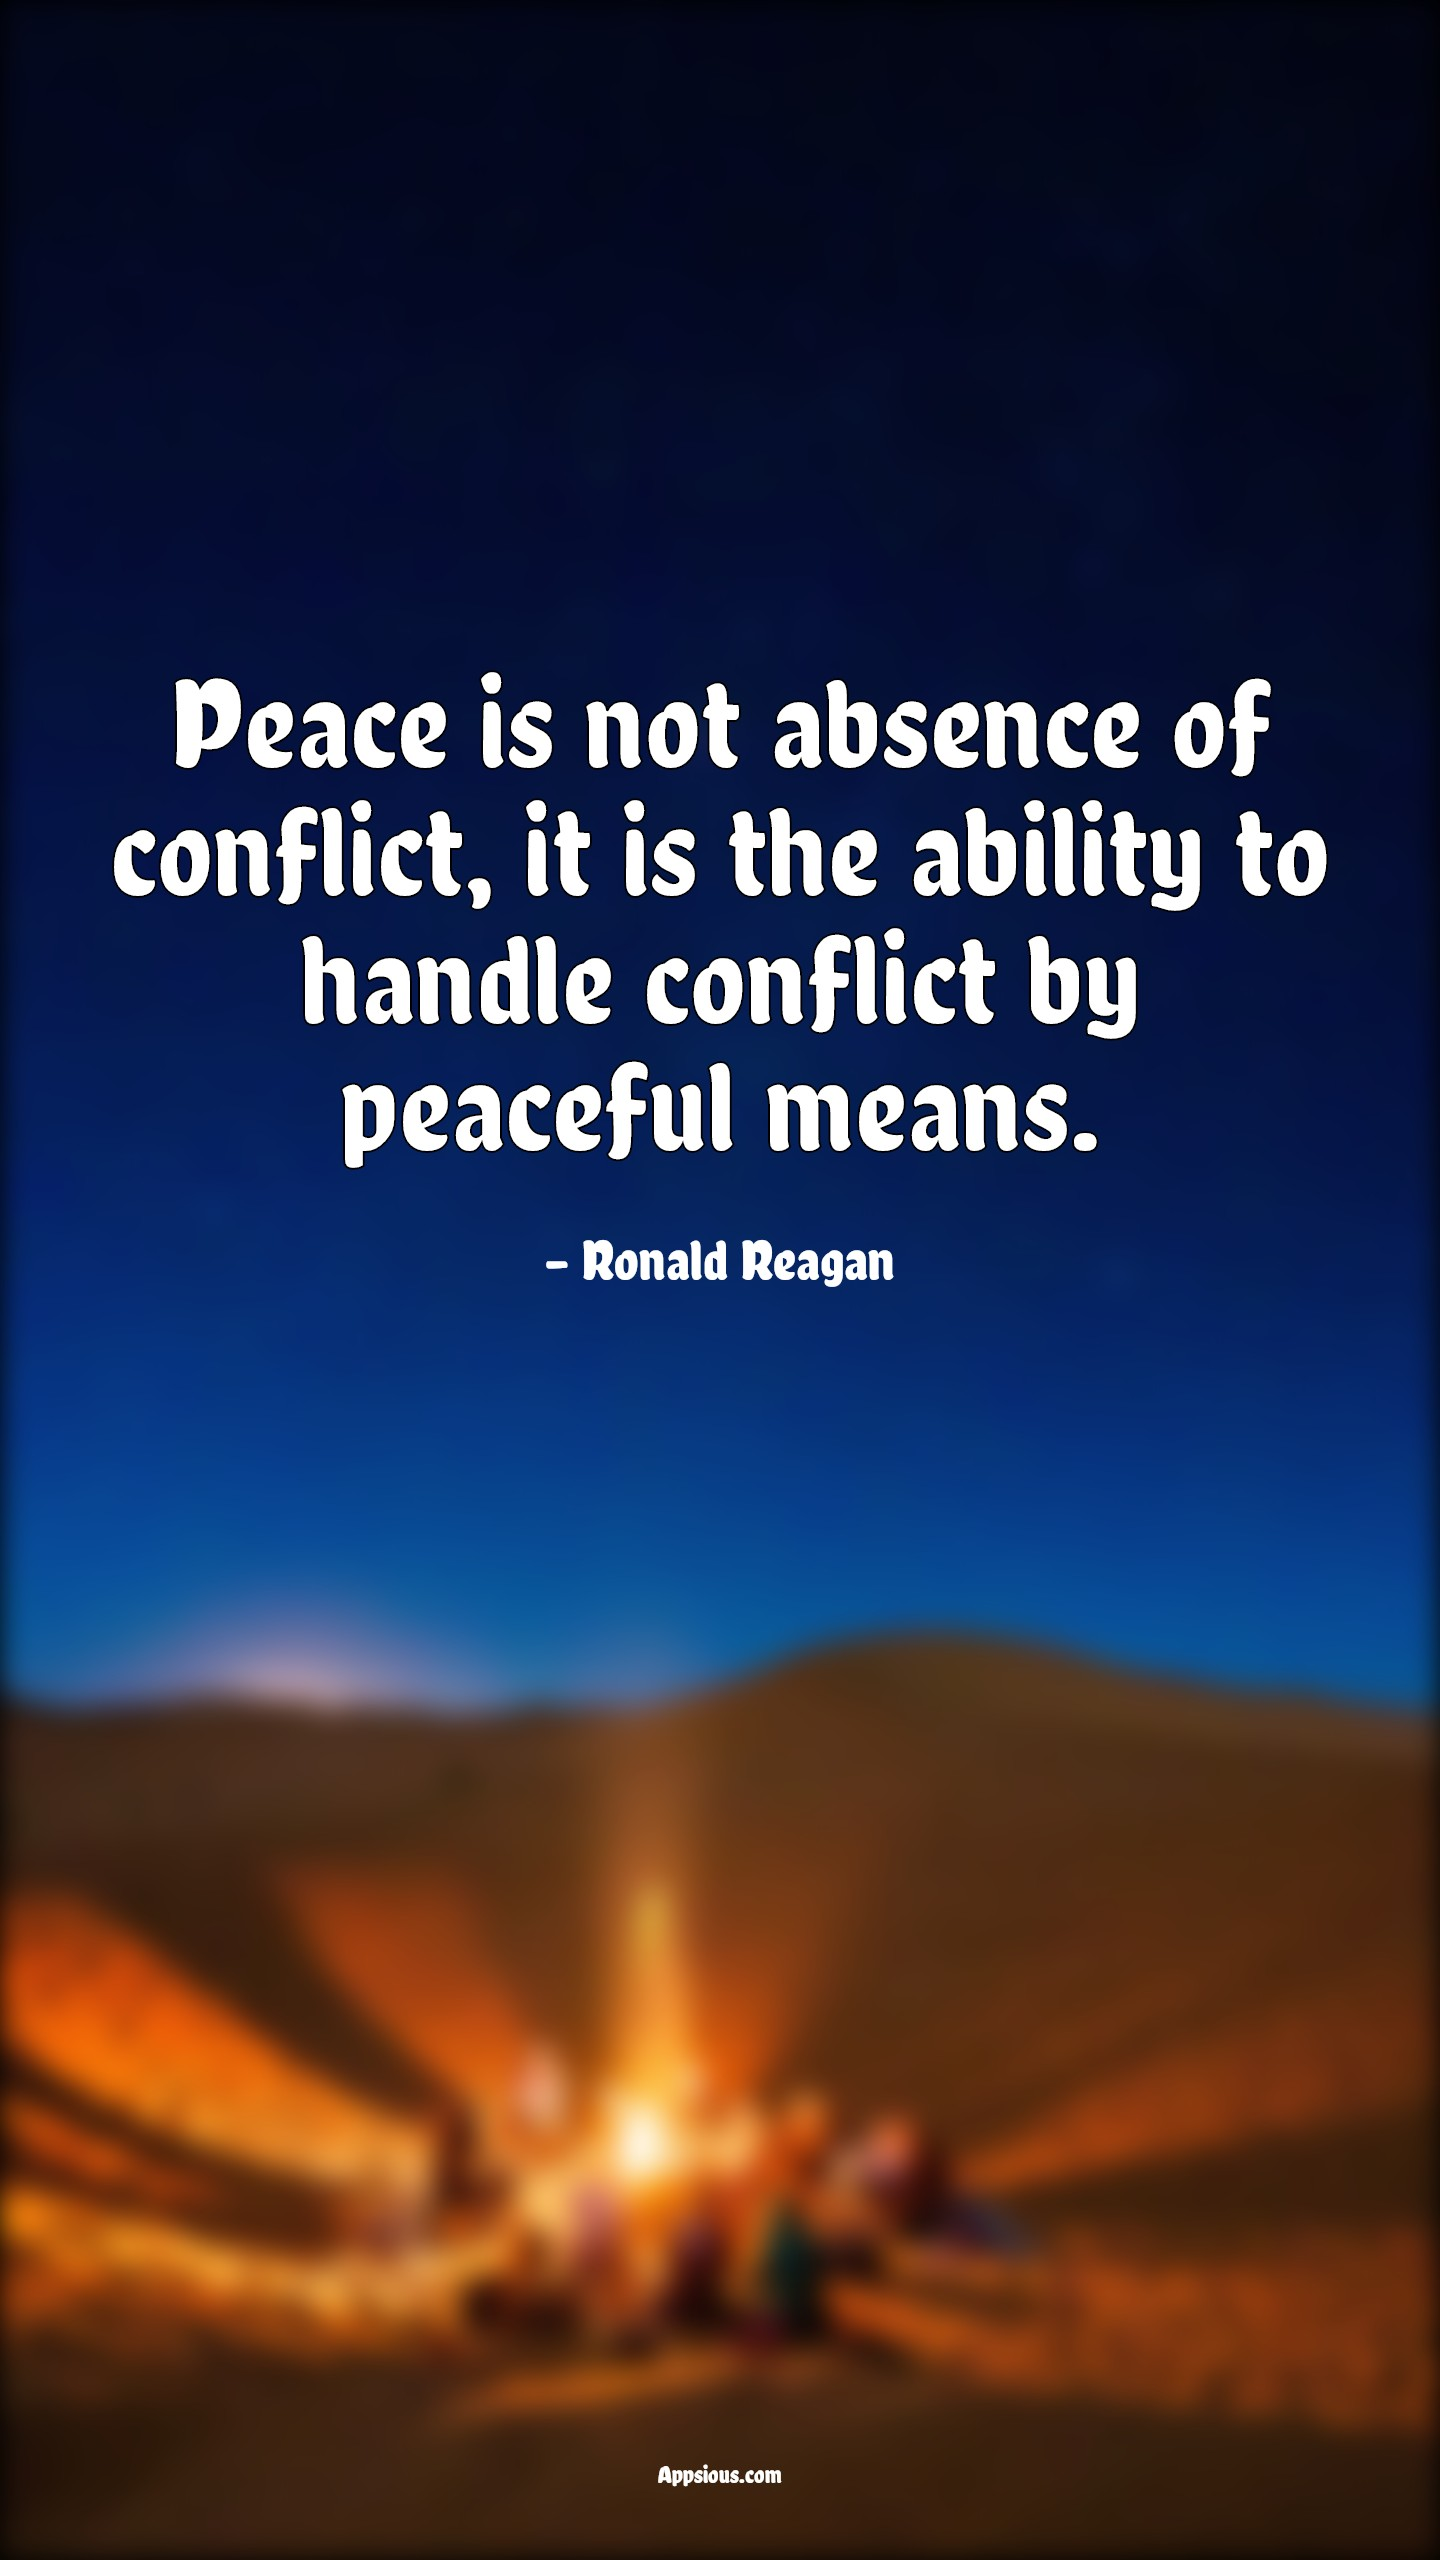 Peace is not absence of conflict, it is the ability to handle conflict by peaceful means.